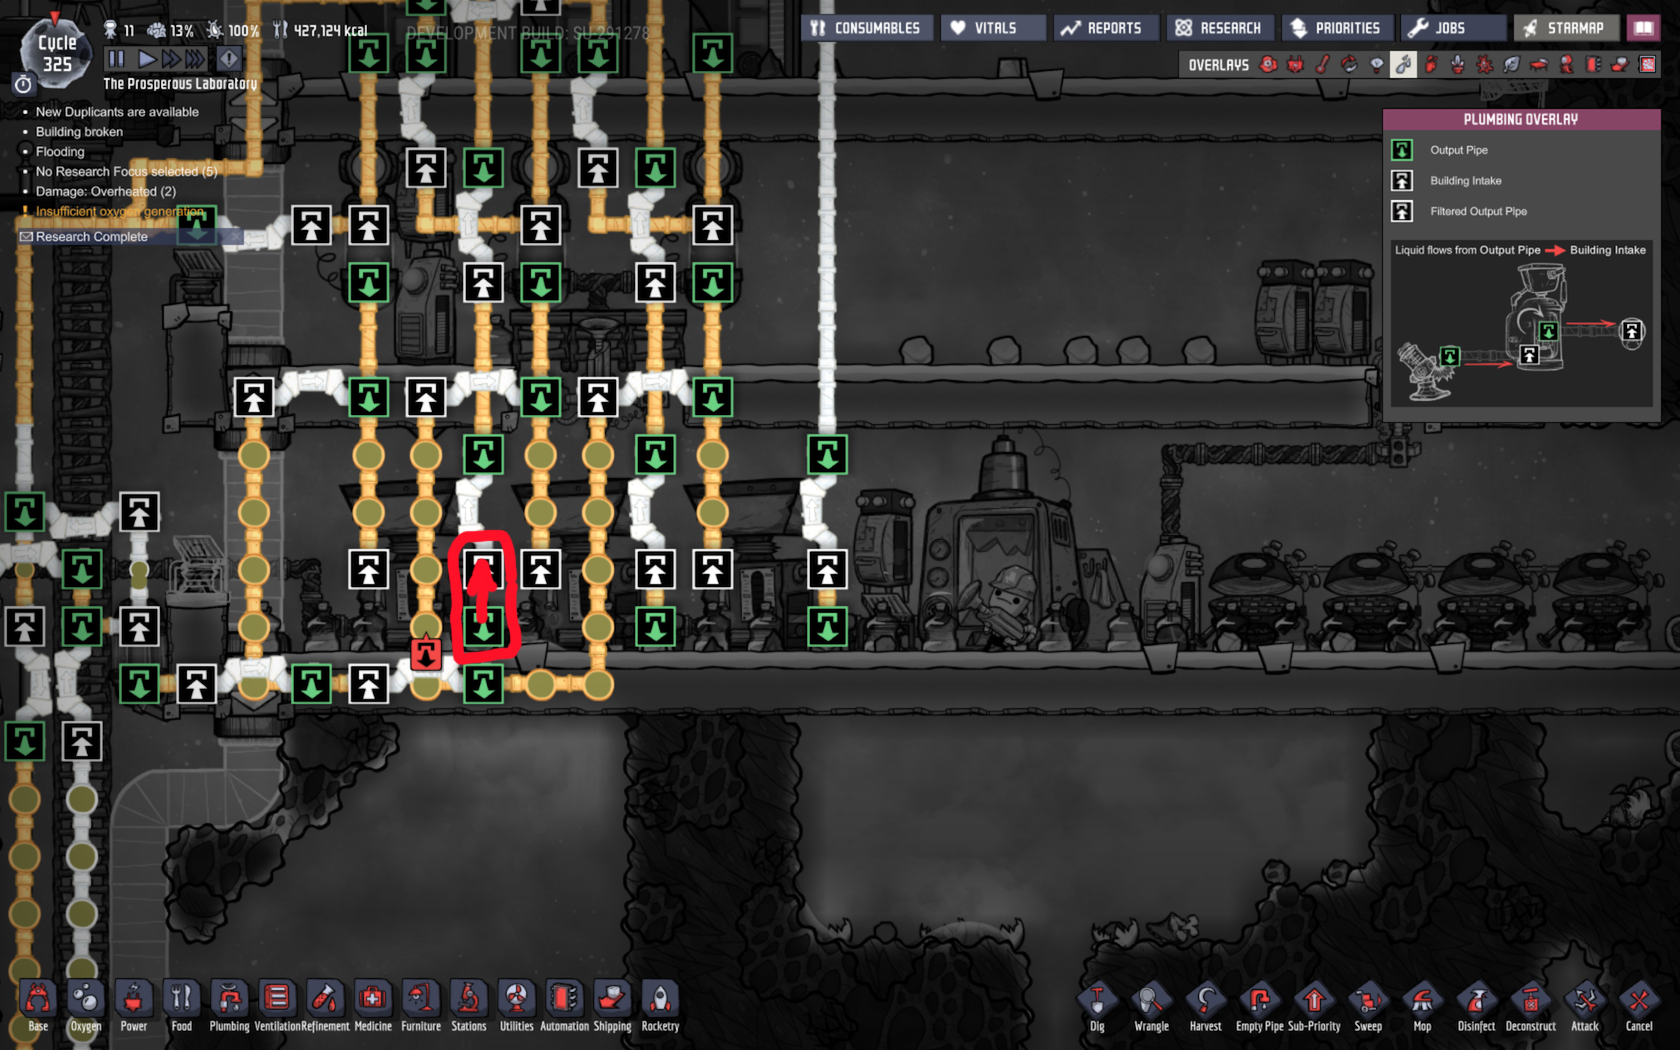 Steel Missing from Inventory + Hot Steam from Refinery